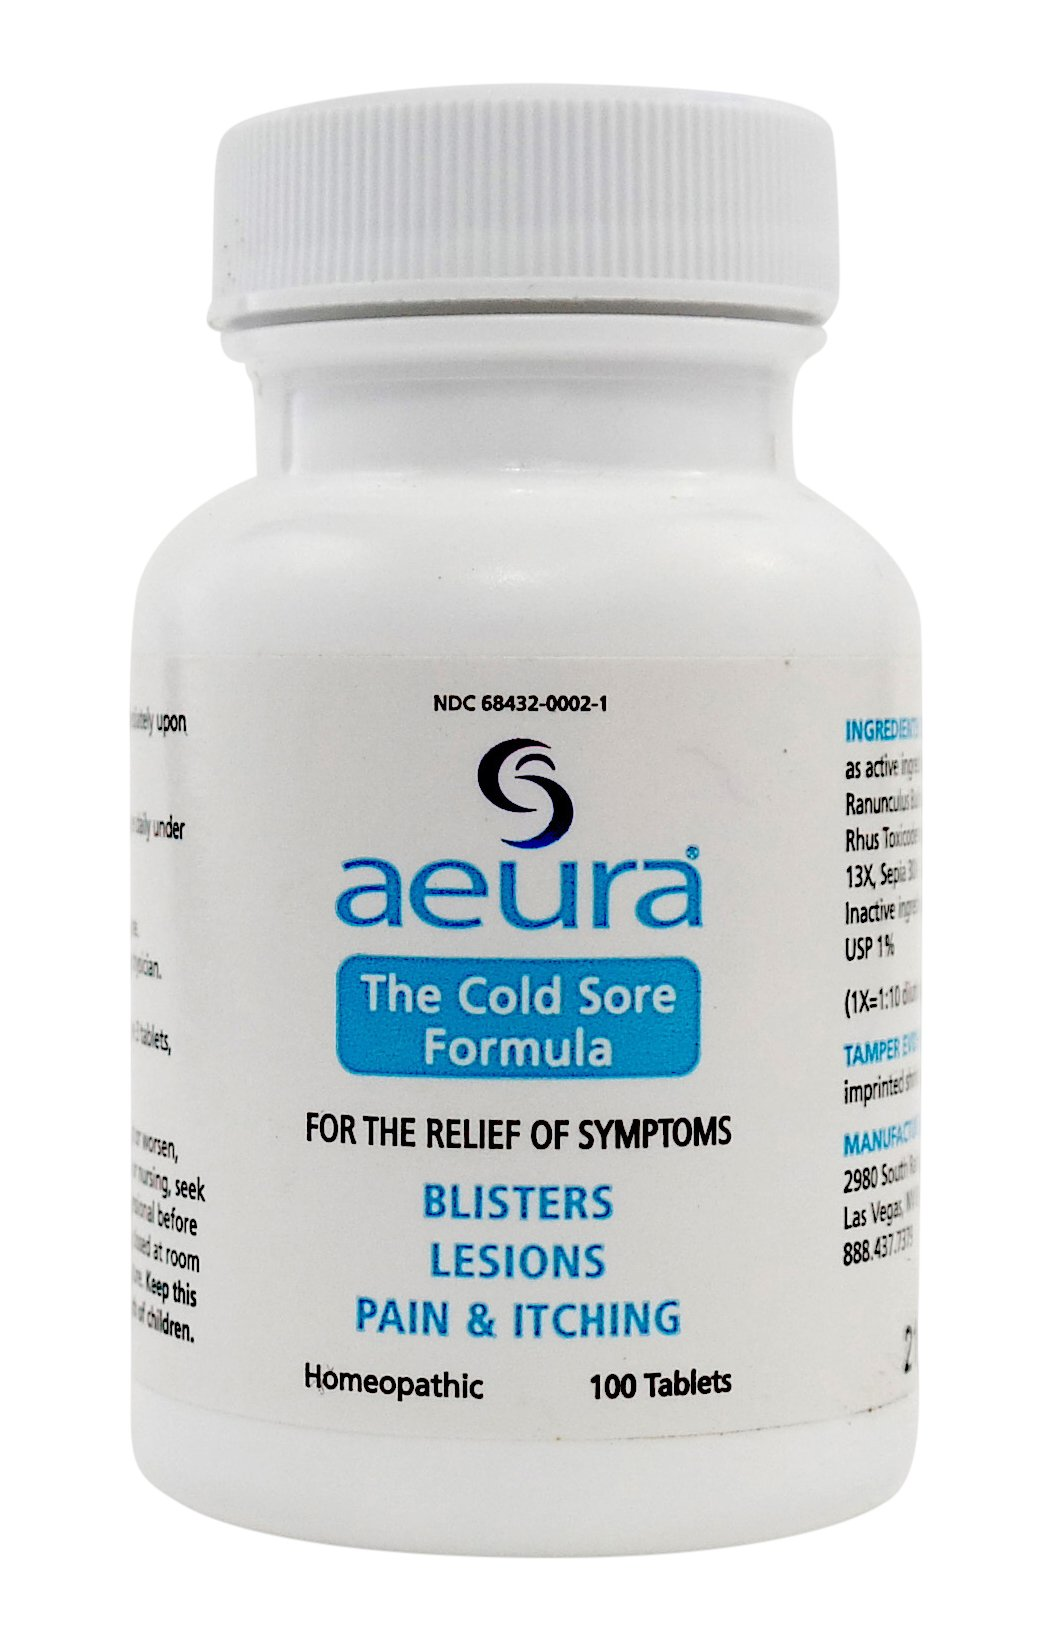 Aeura - The Cold Sore Formula - Cold Sore Outbreak Relief & Prevention - Safe & Effective, ALL-NATURAL Tablets